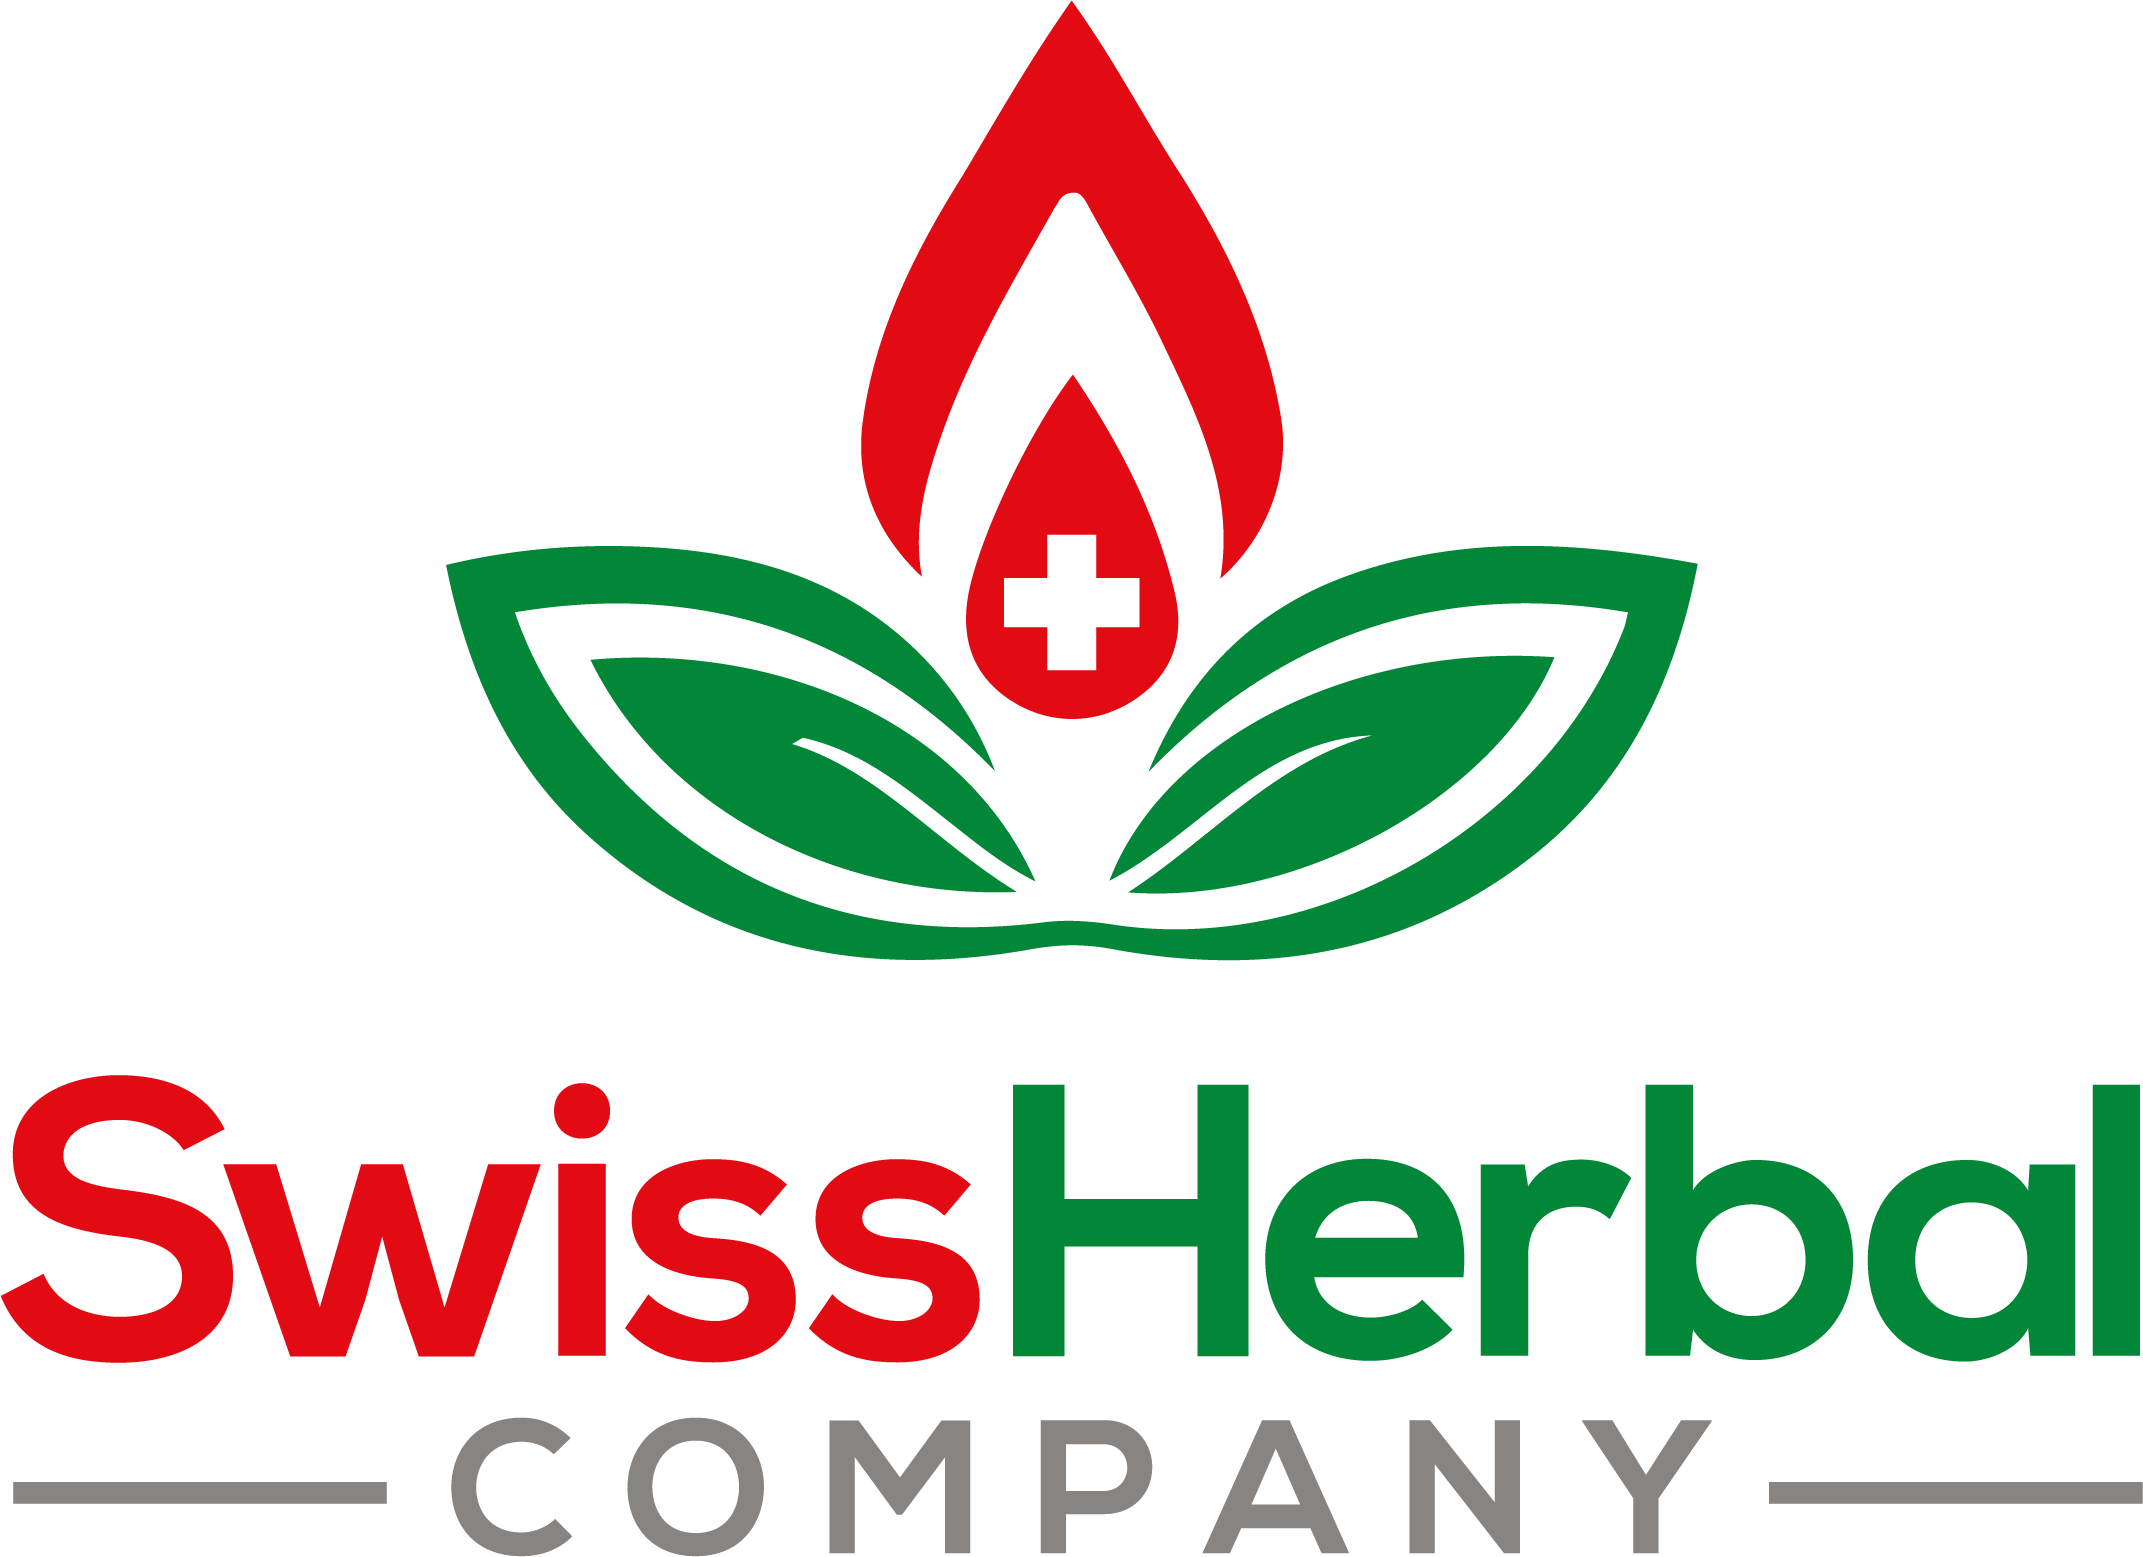 Swiss Herbal Company